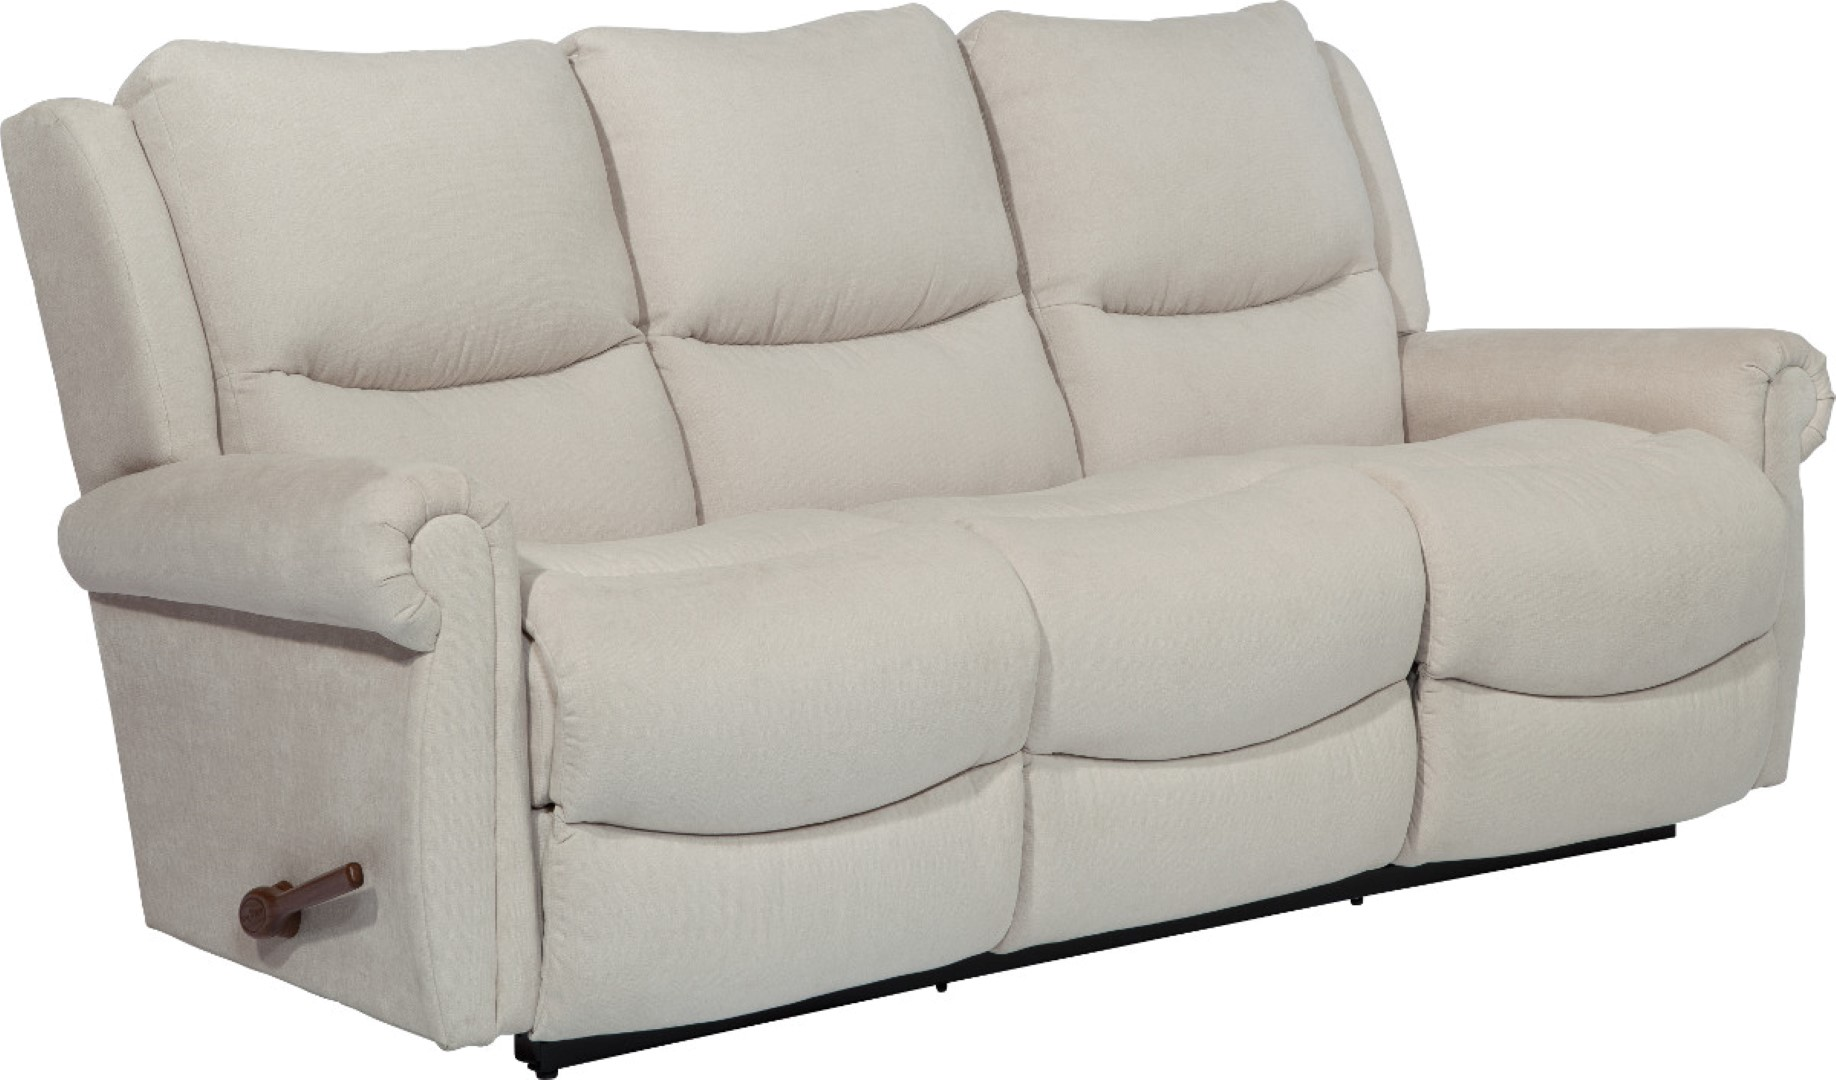 Lazyboy Loveseat Recliner Great Recliner Rocker Stylish